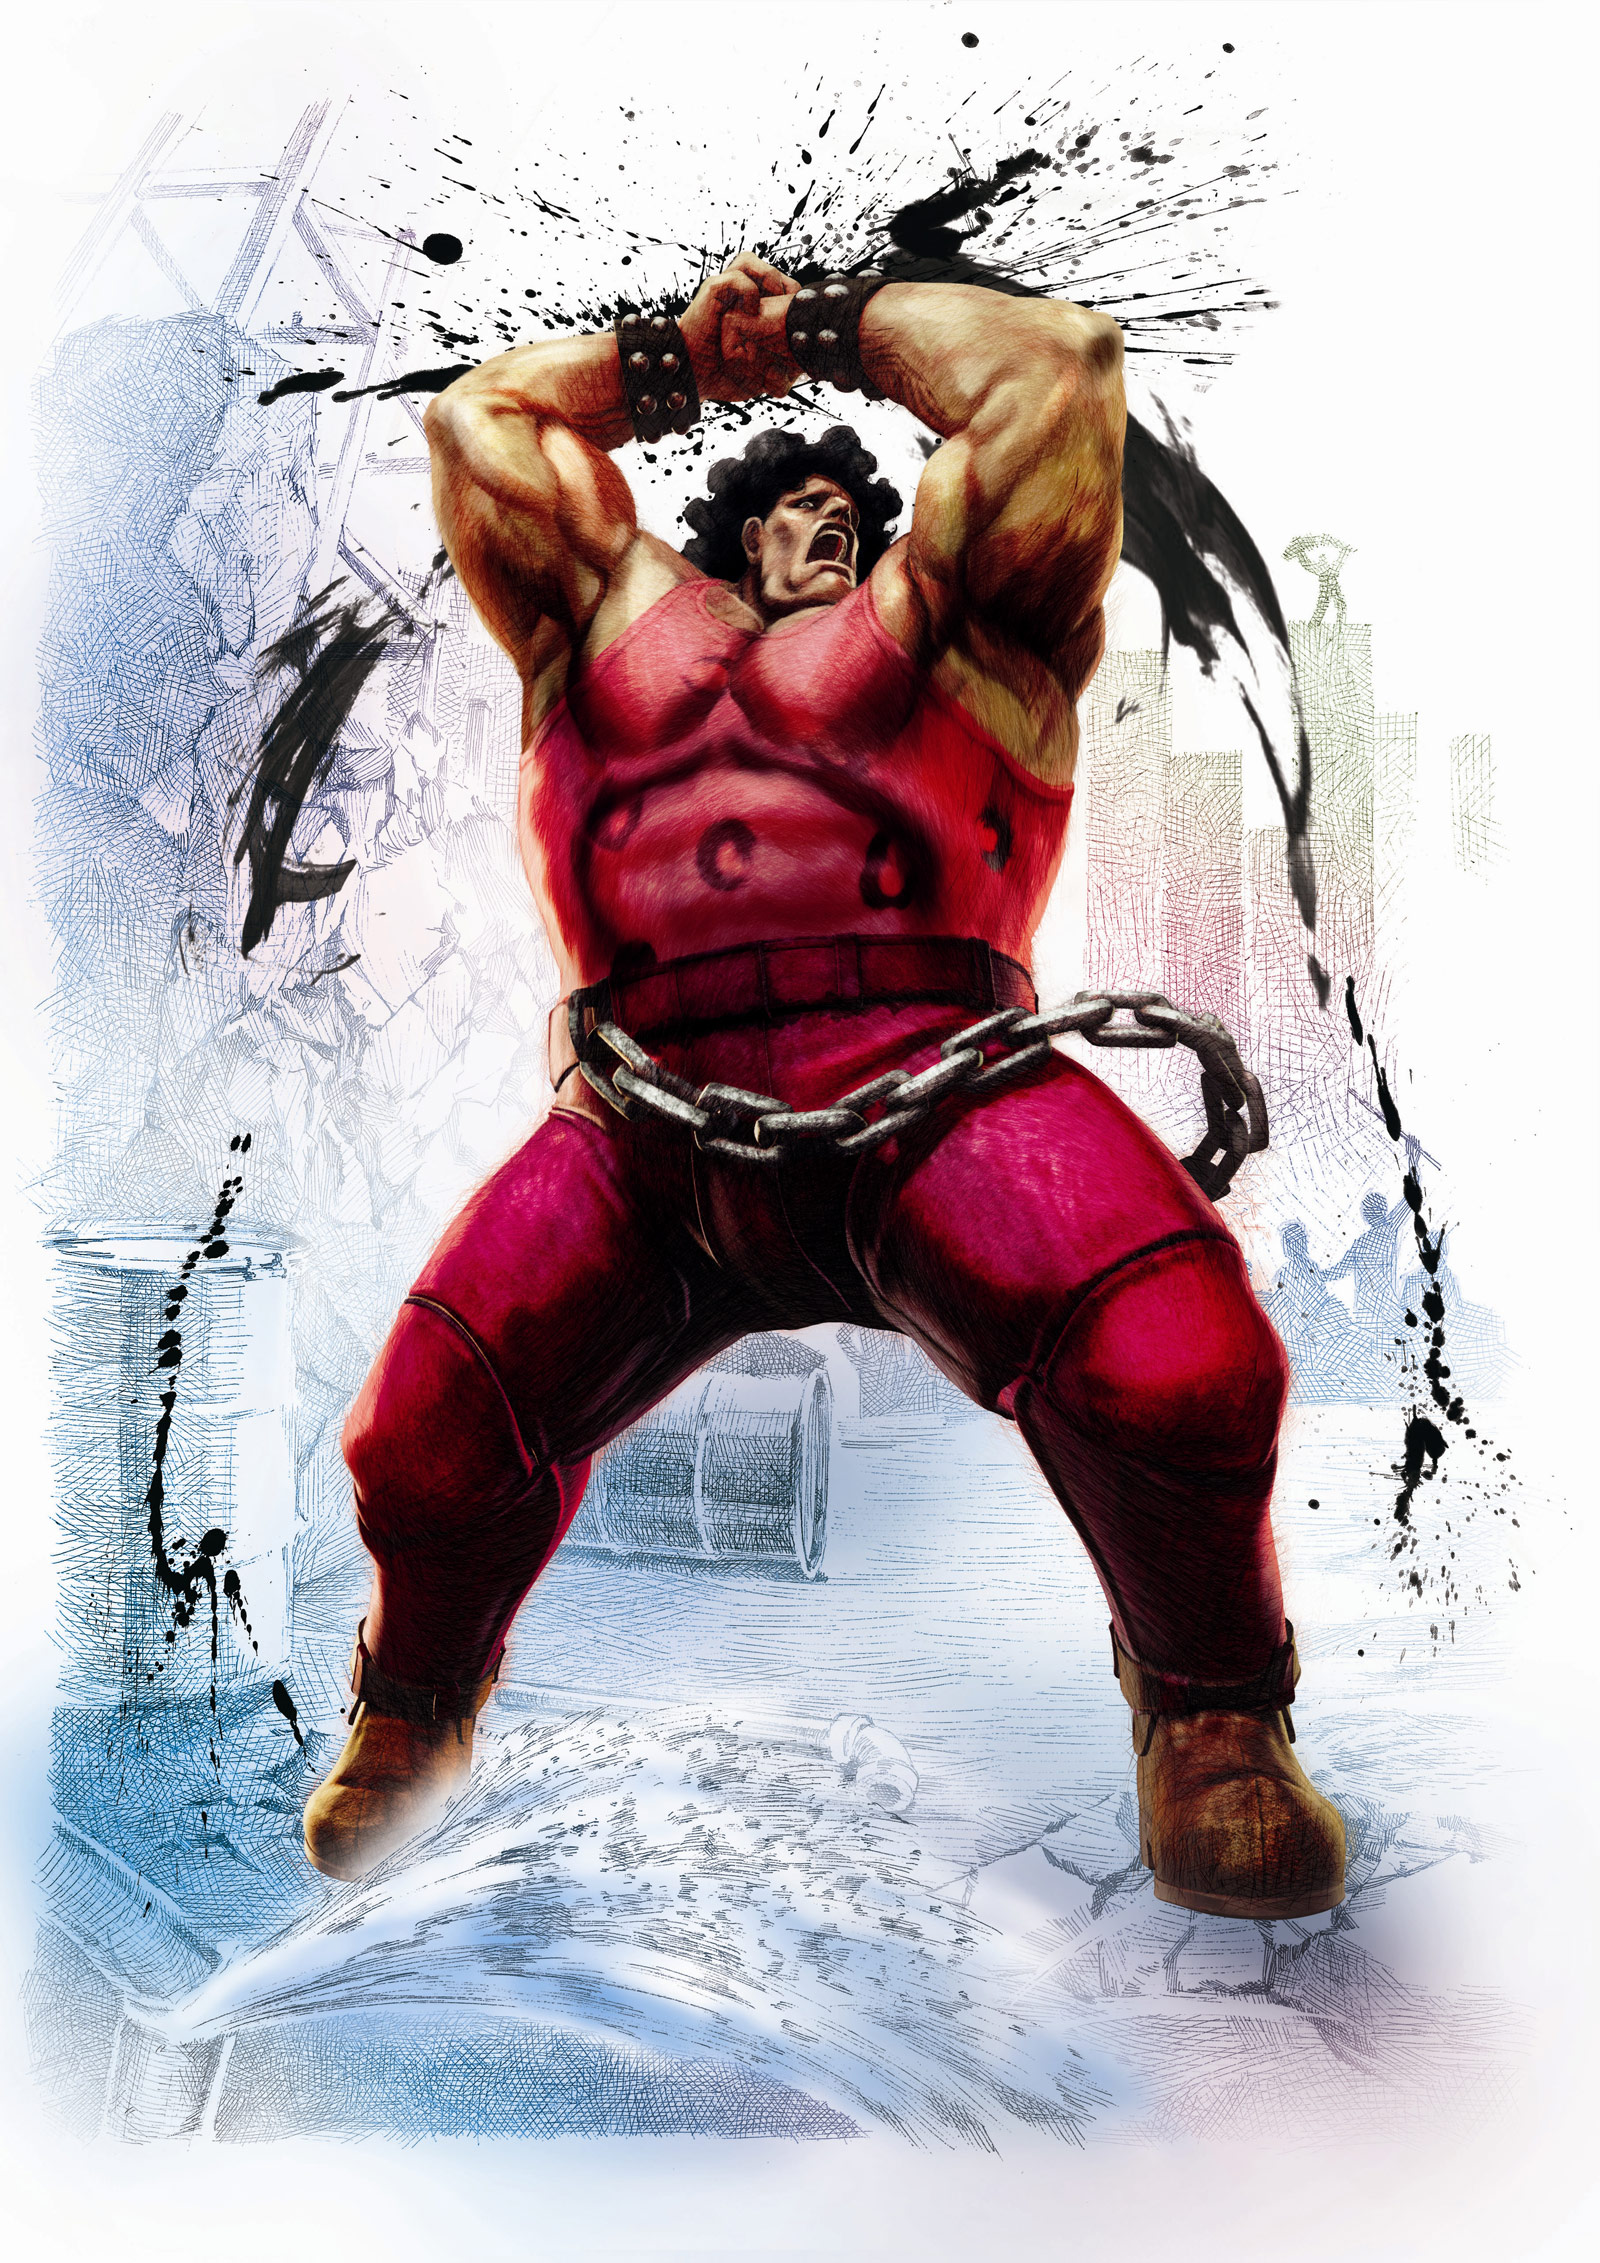 15_usf4artwork06.jpg